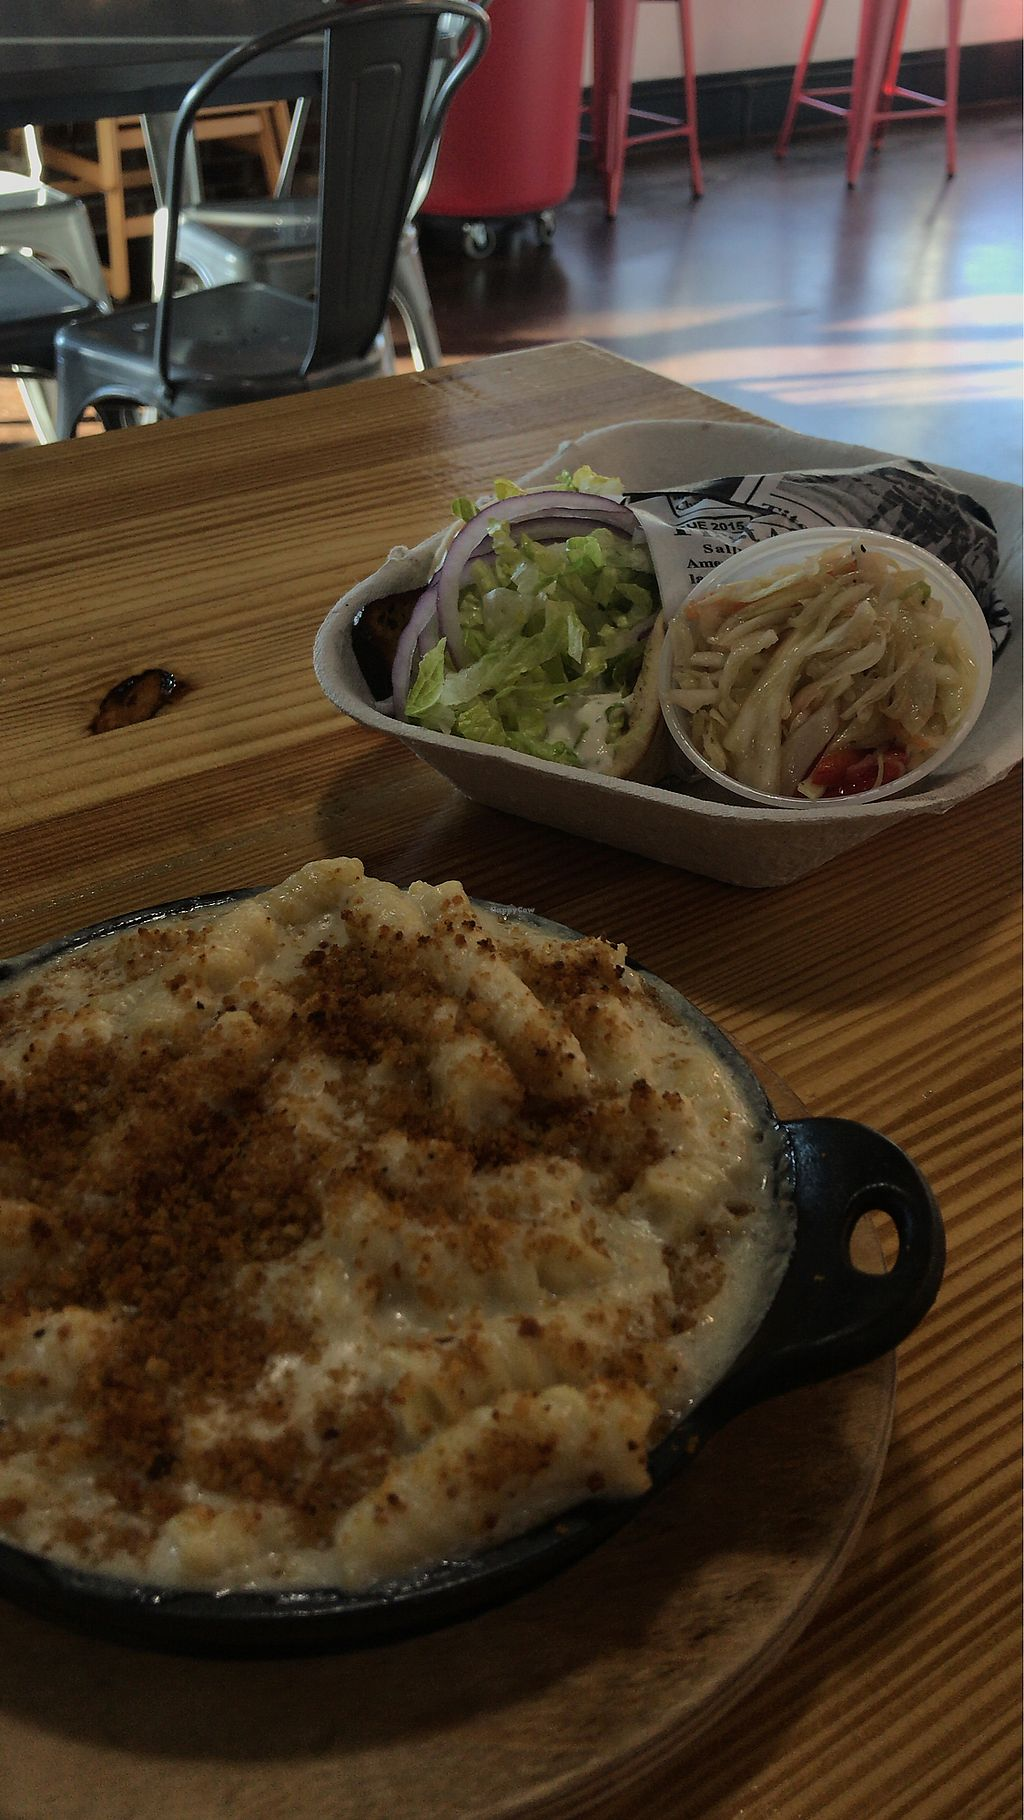 "Photo of The District Bar  by <a href=""/members/profile/alysescotti"">alysescotti</a> <br/>Truffle Mac & Cheese and The Gyro from Banzo  <br/> March 1, 2018  - <a href='/contact/abuse/image/97494/365119'>Report</a>"